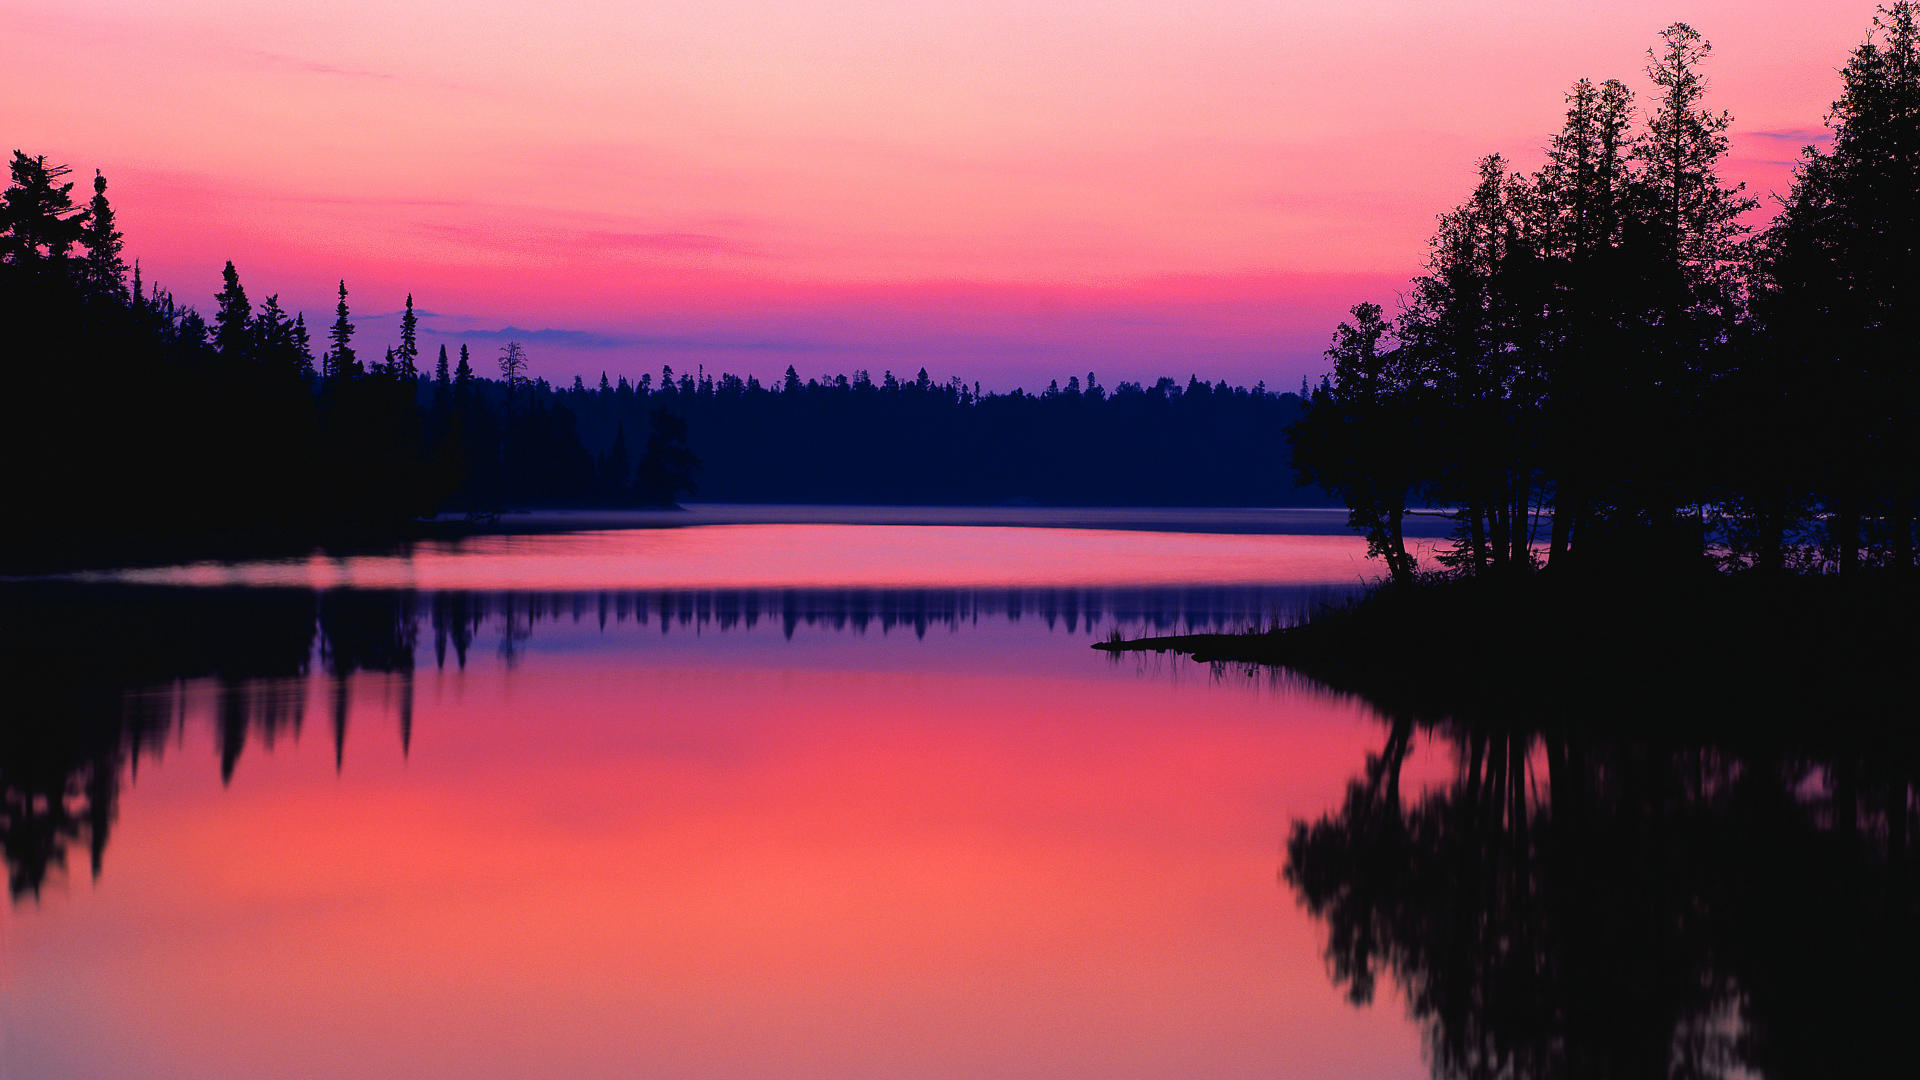 Pink Dark Water Reflection Nature HD Wallpaper 2844 HD Wallpaper 1920x1080